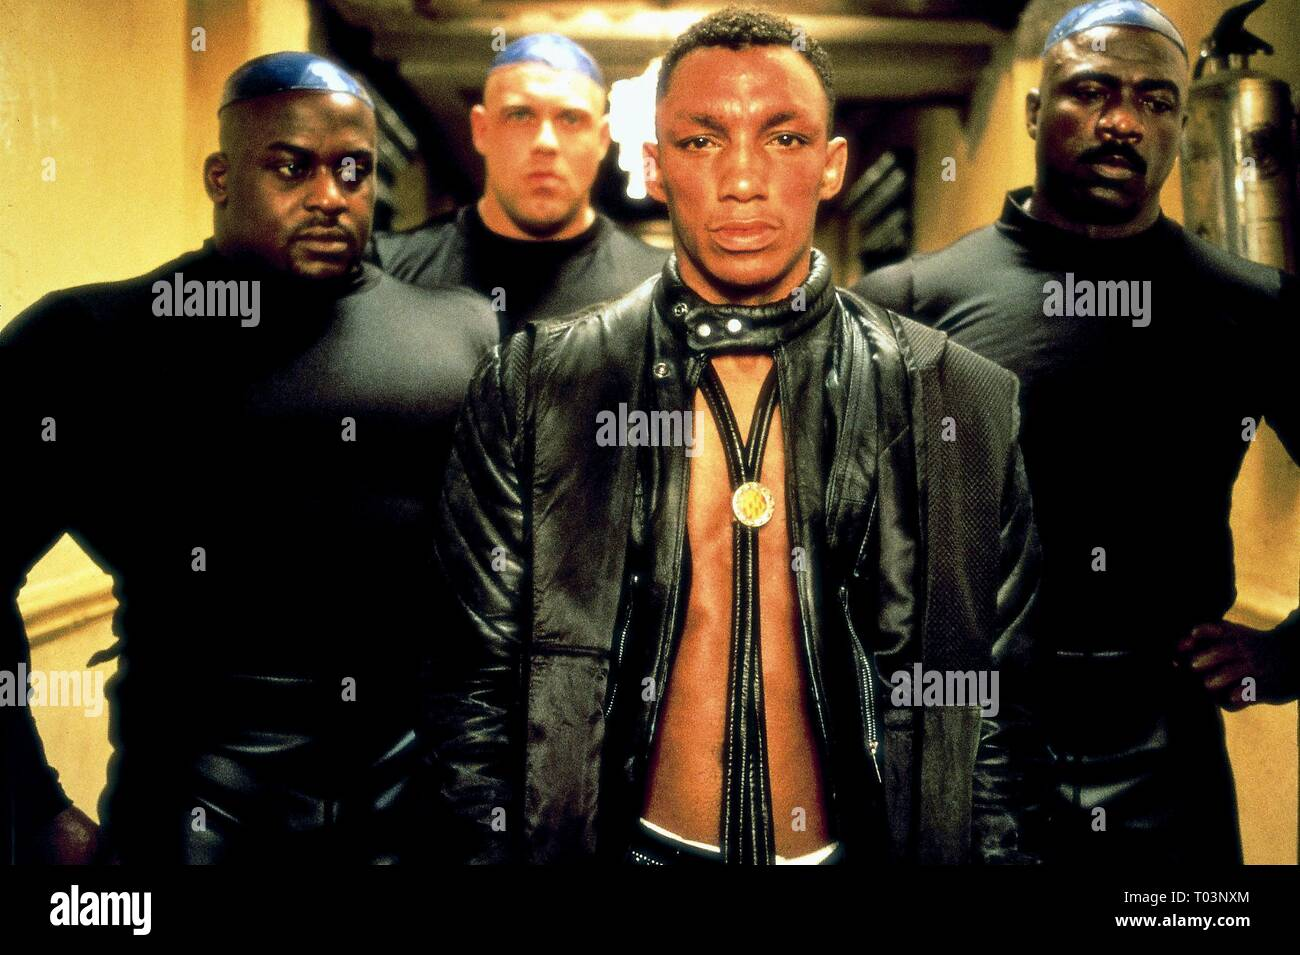 Tricky The Fifth Element 1997 Stock Photo Alamy